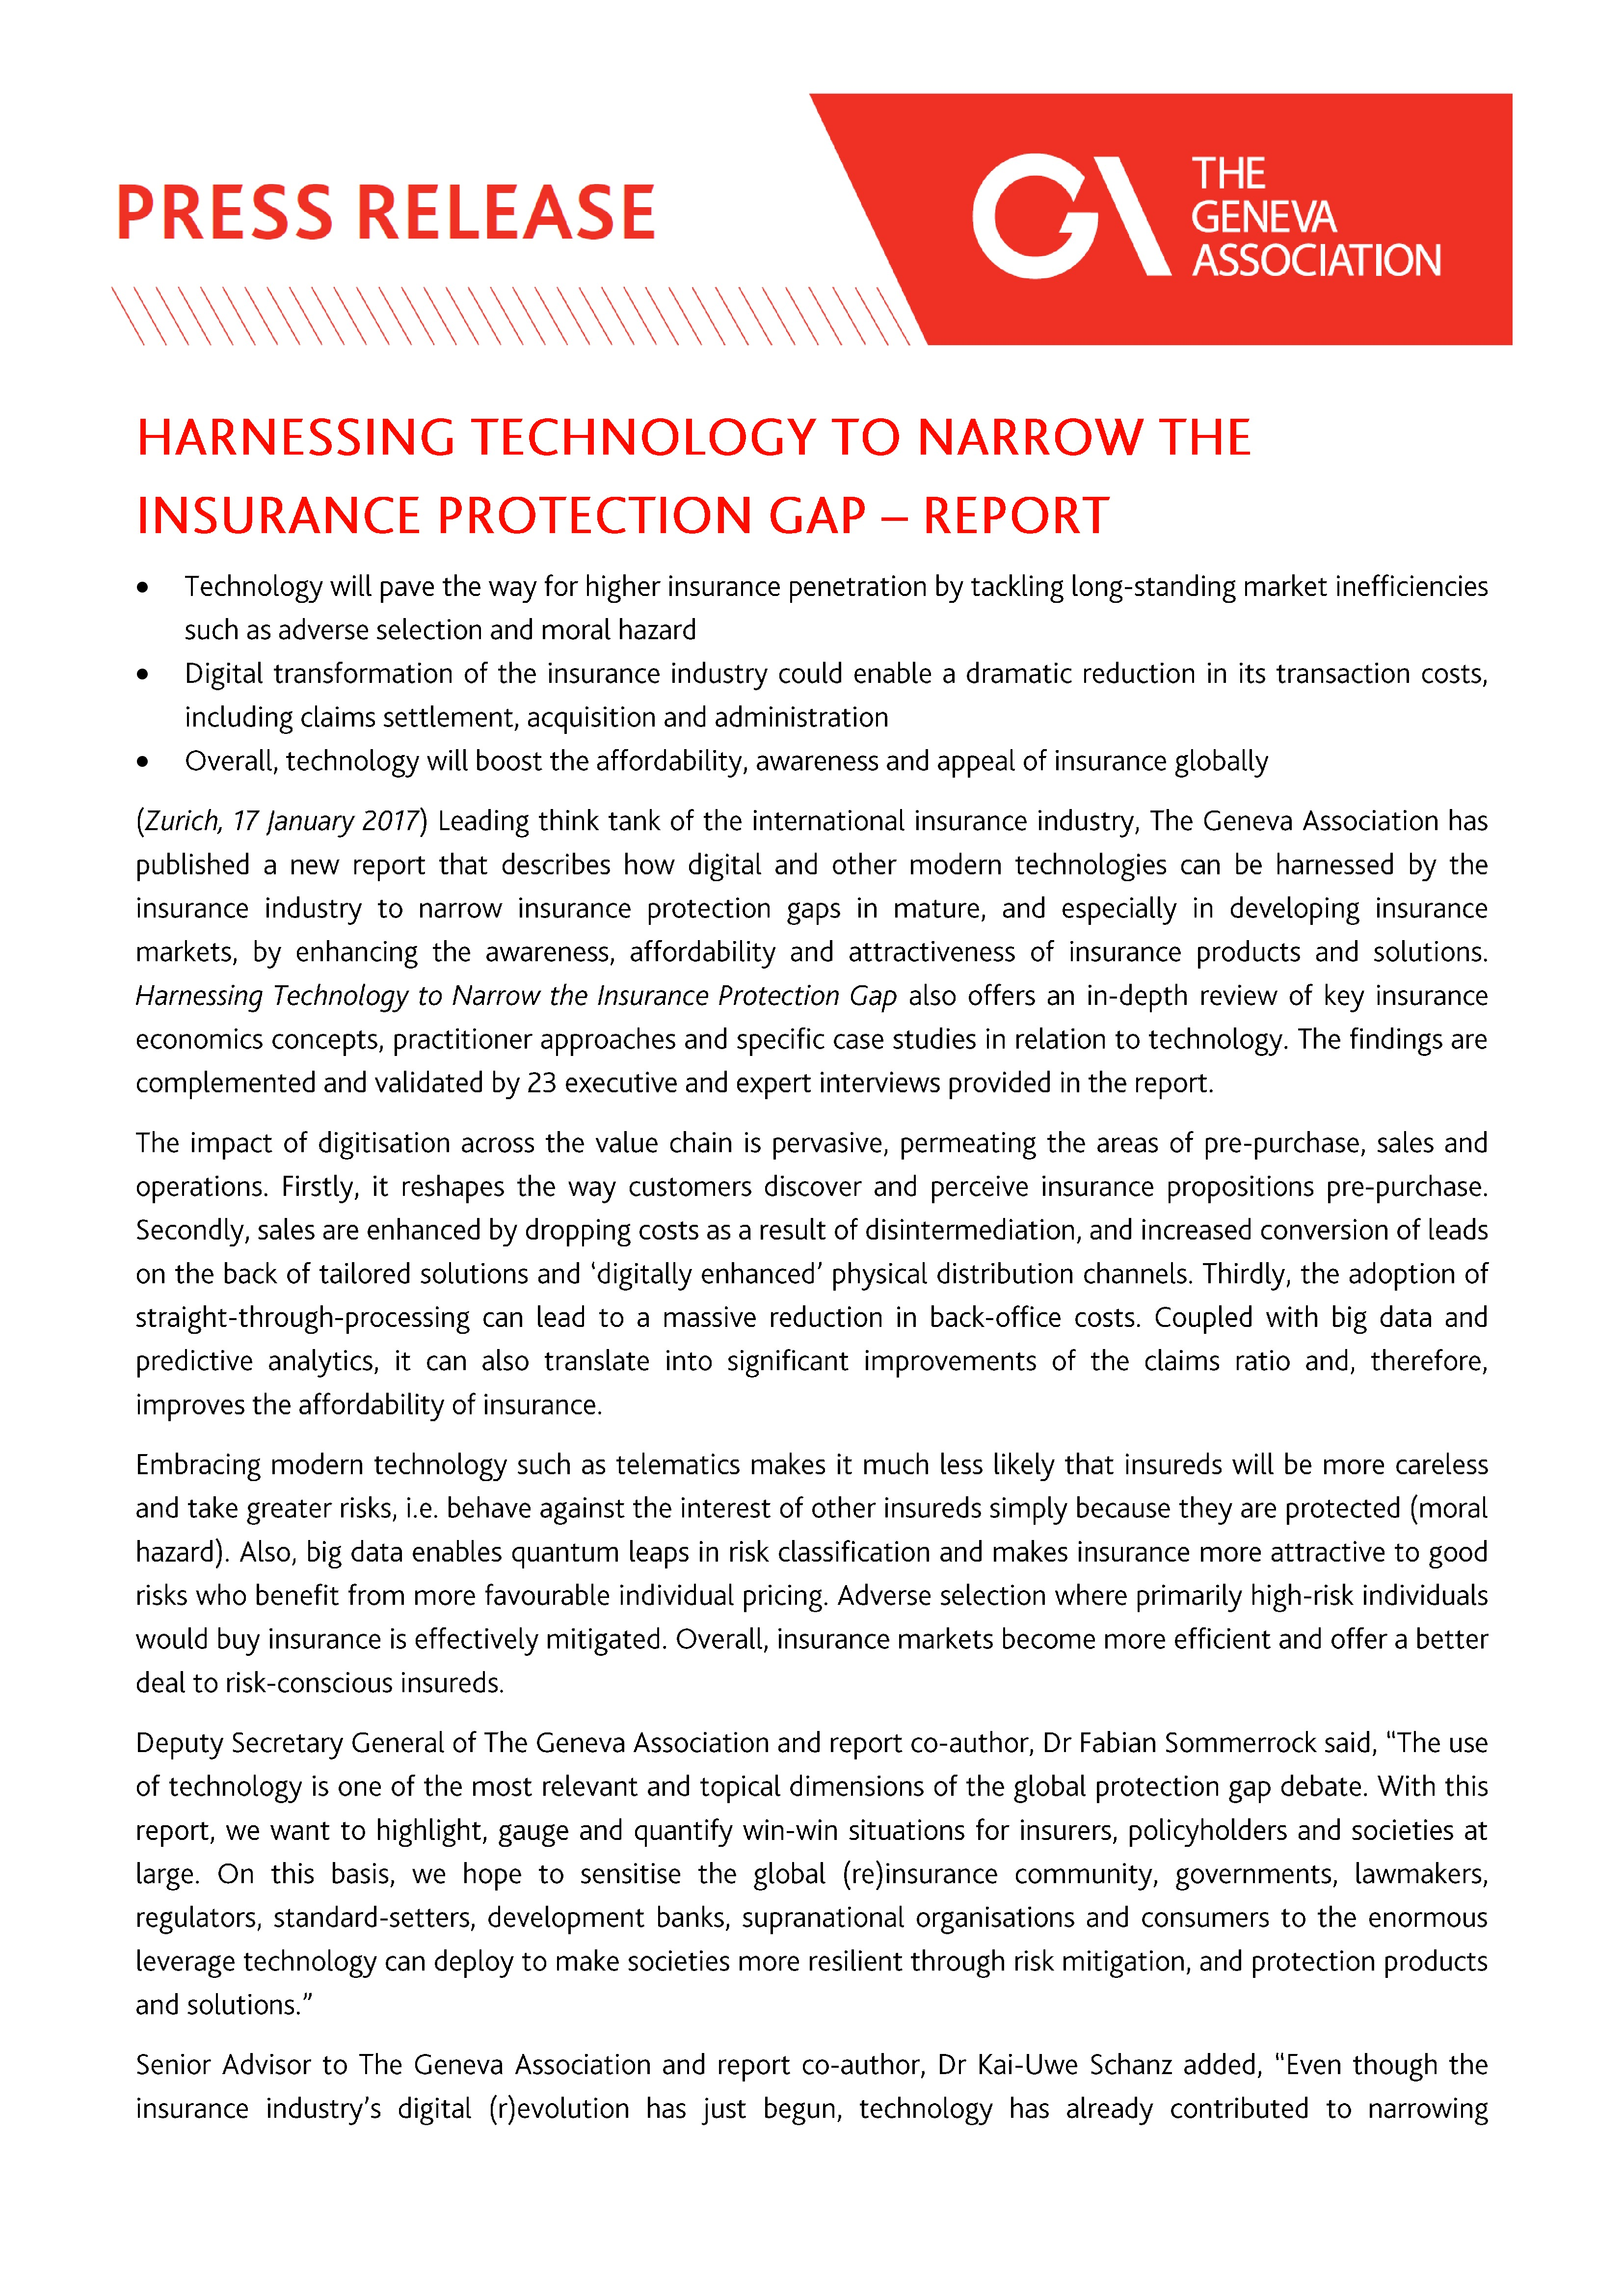 Press Release: Harnessing Technology to Narrow the Insurance Protection Gap